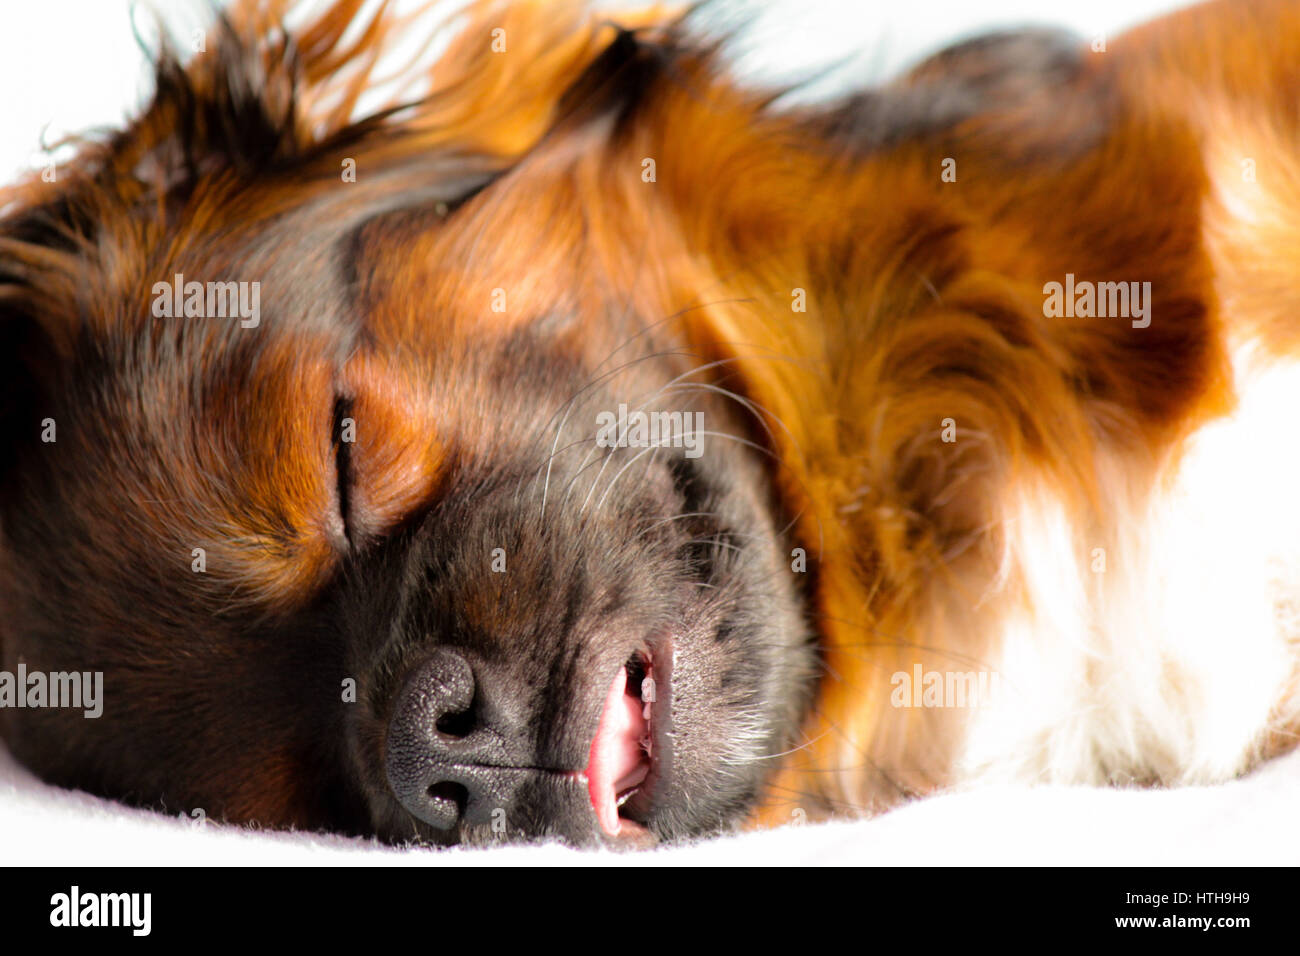 Picture of a small cute dog sleeping like a baby - Stock Image